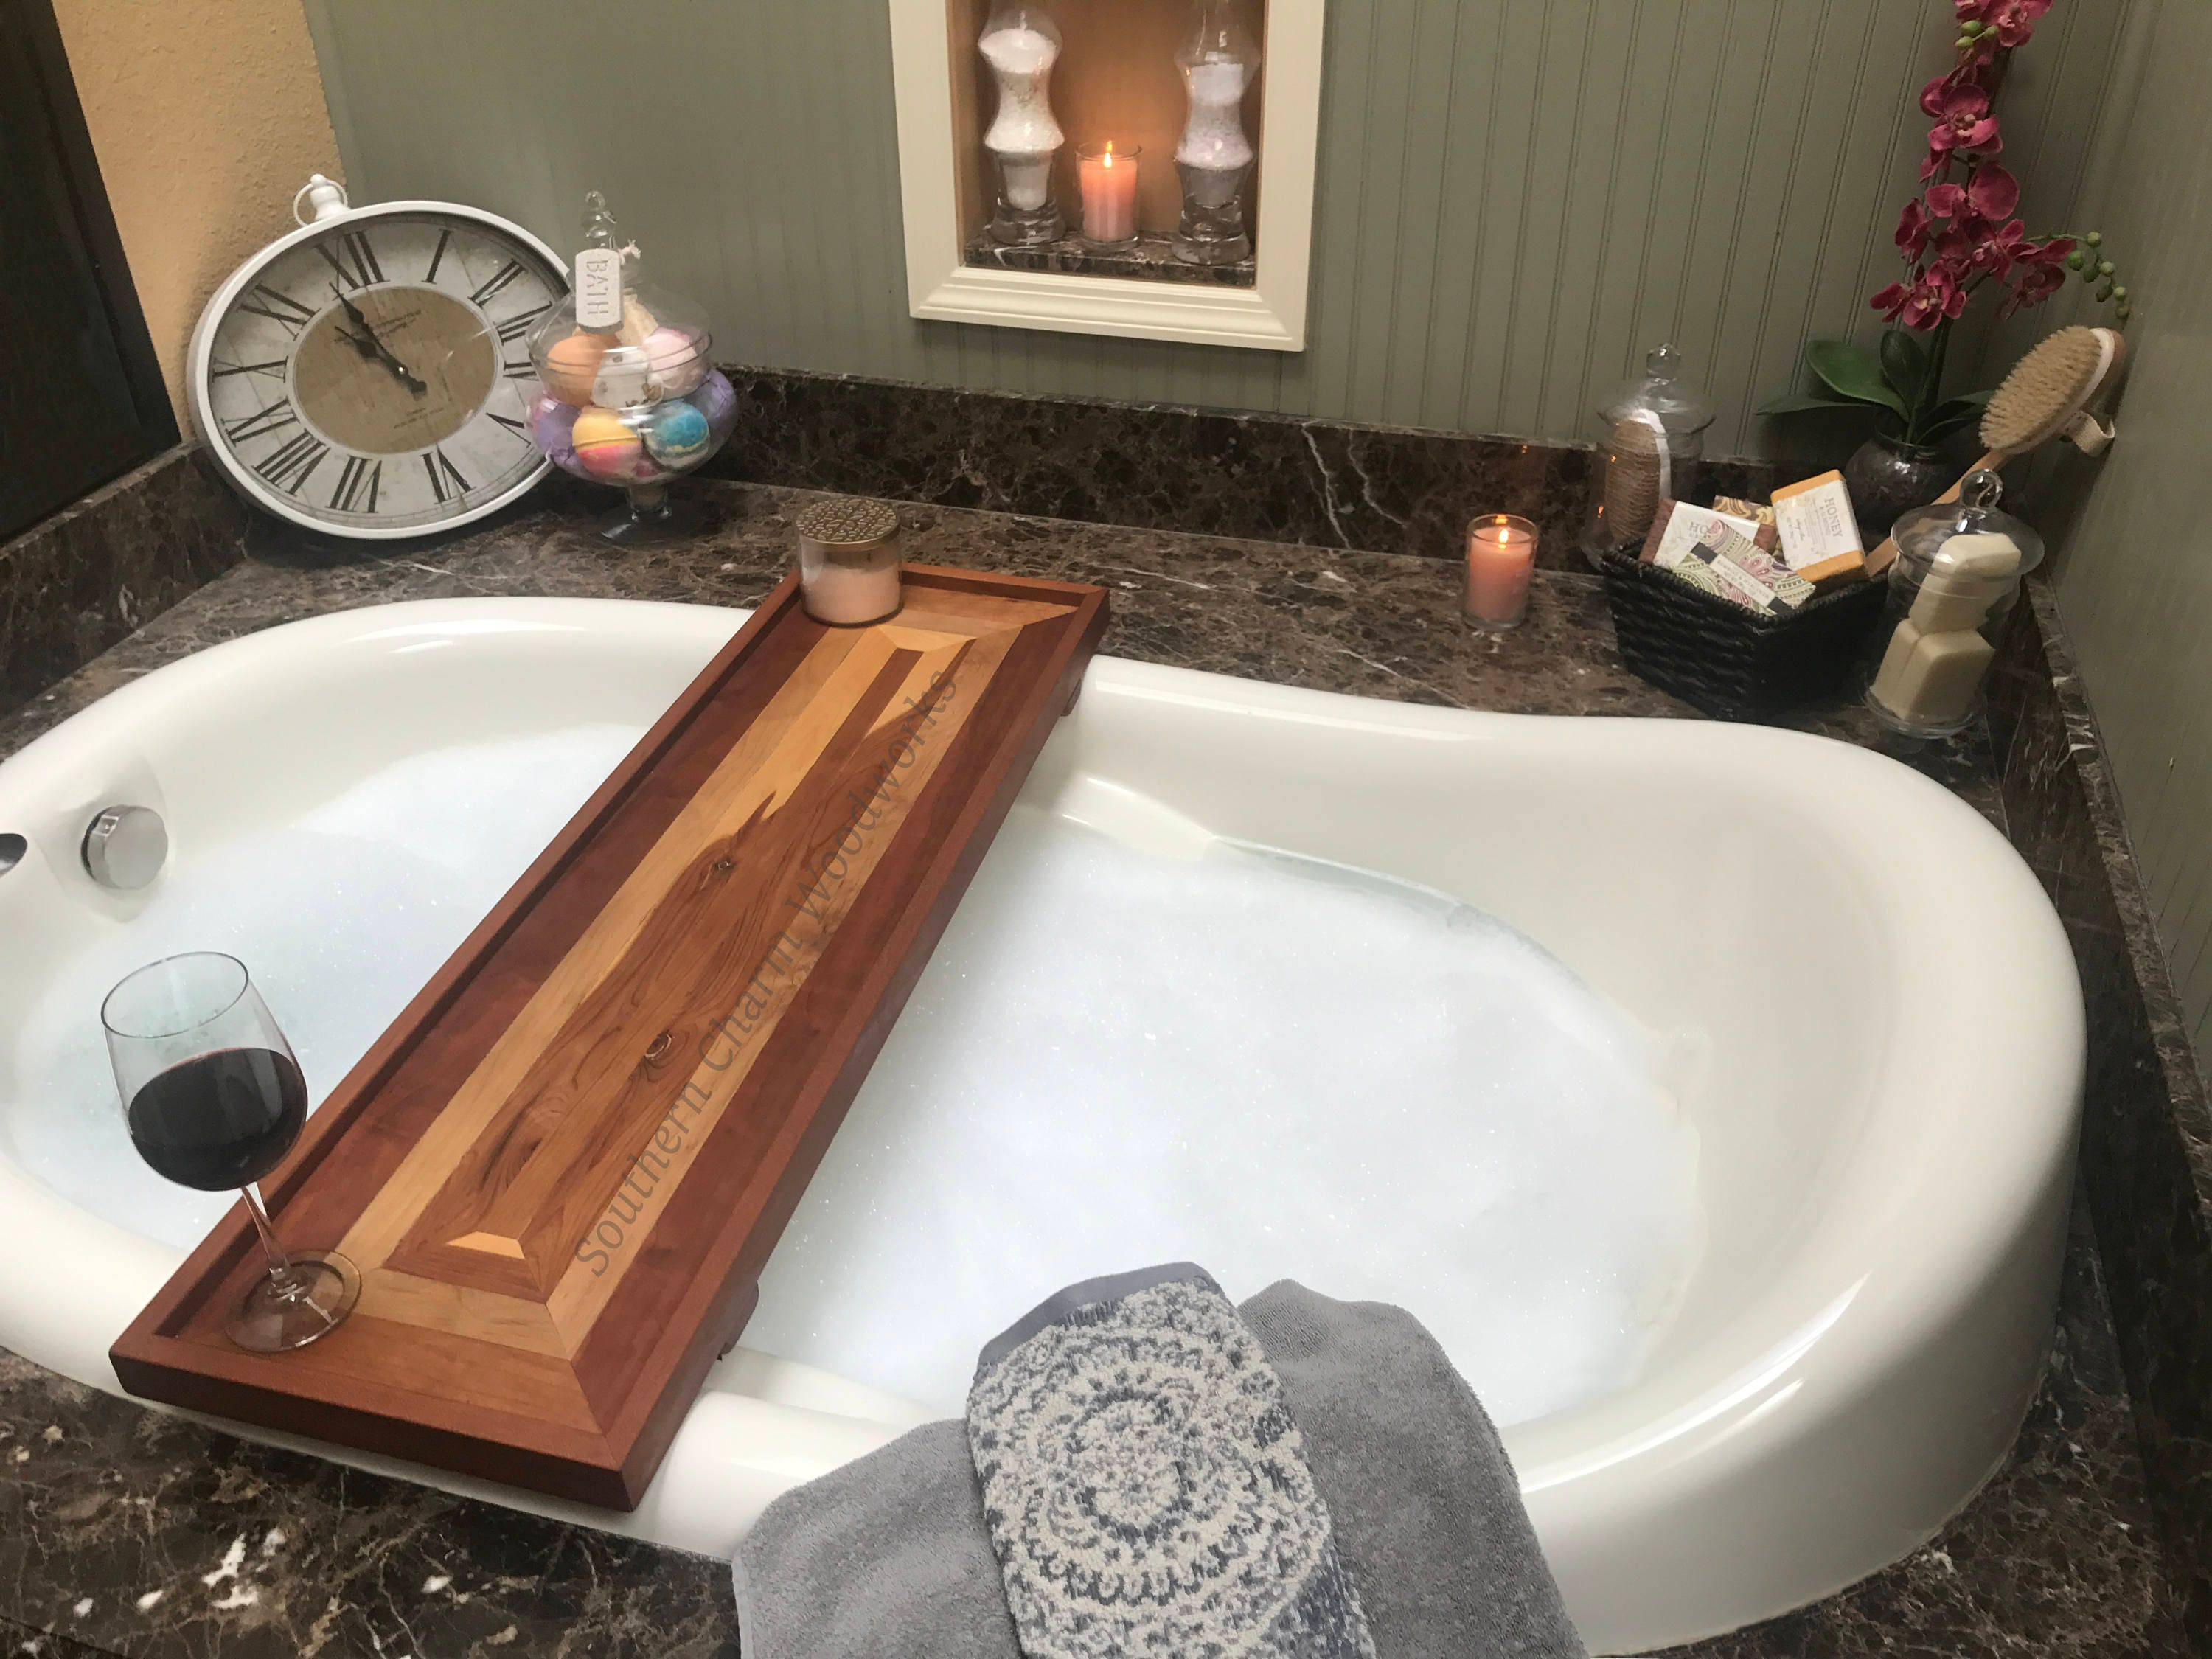 Wood Bath Tub Tray With Optional Wine Holder. Bathtub Tray Shelf, Luxury Bathtub  Tray, Bath Caddy Rectangle Pattern. Gift For Her.